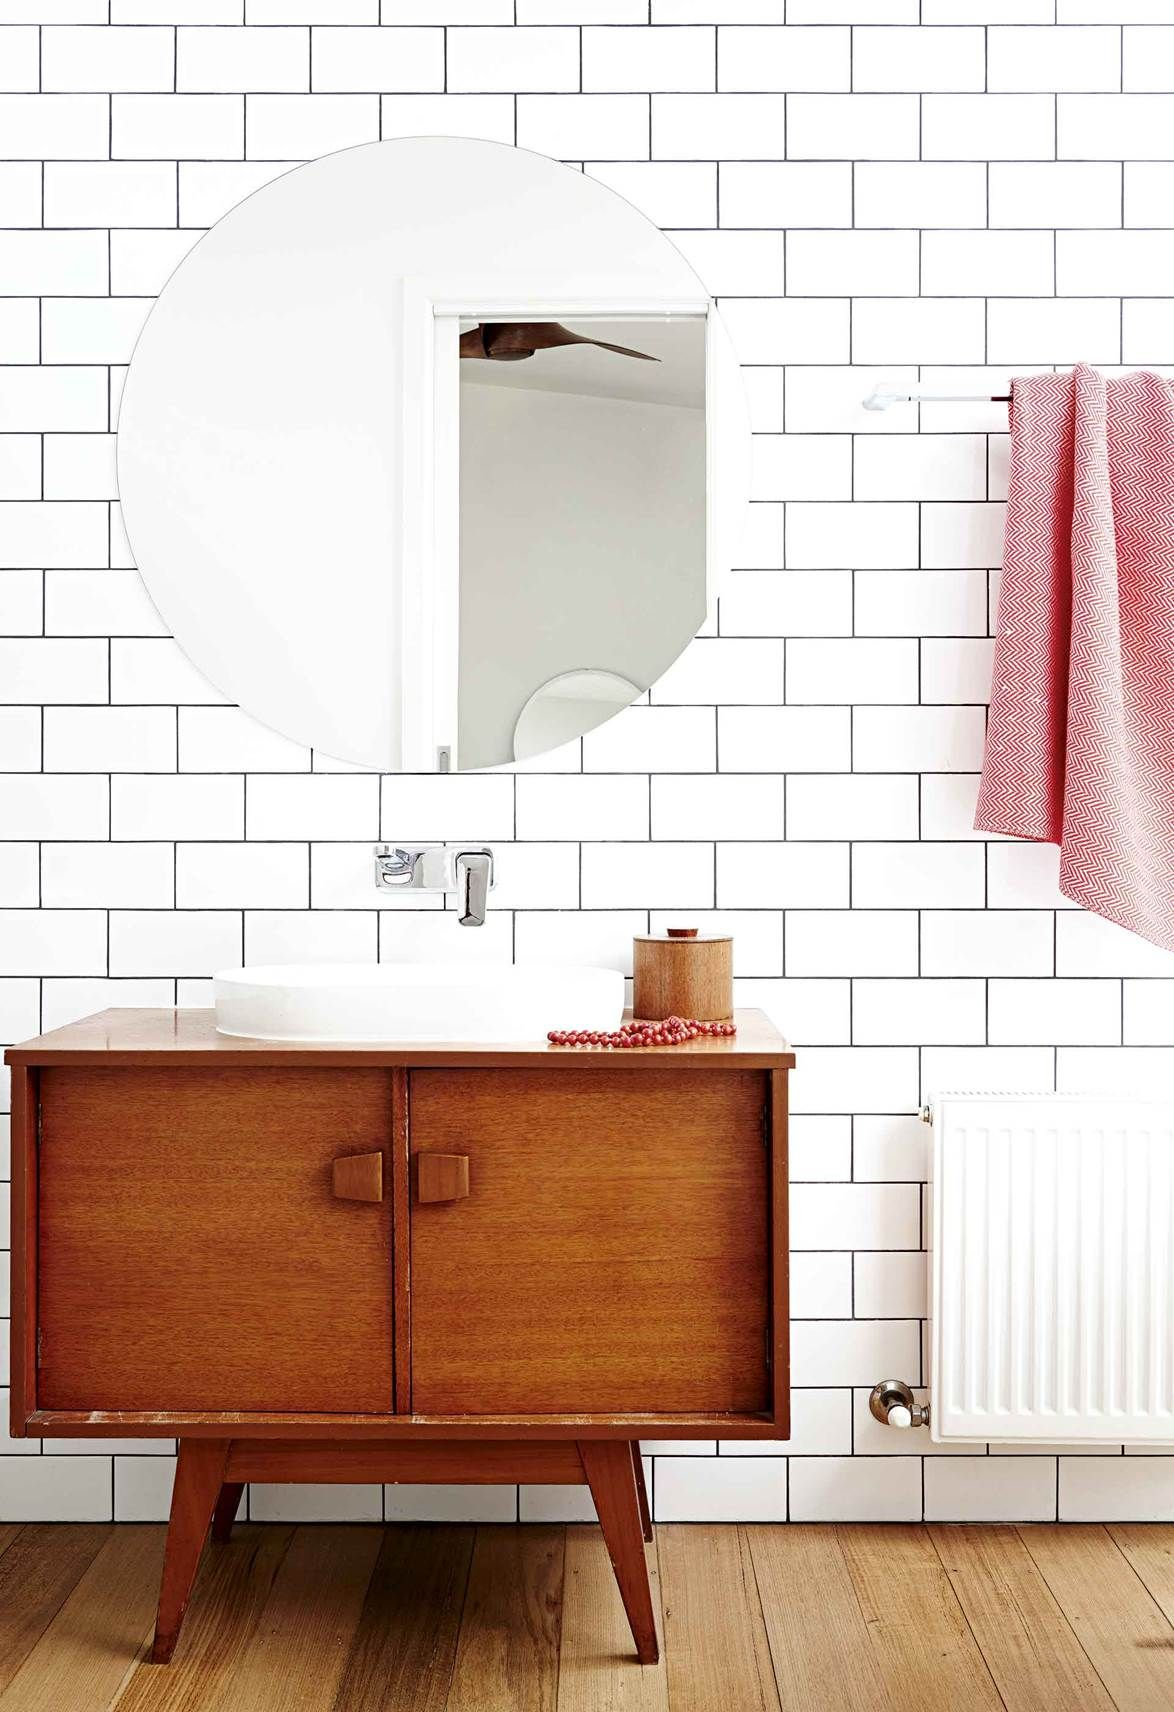 A Mid Century Weatherboard House Was Given A Retro Revamp Retro Bathrooms Mid Century Modern Bathroom Mid Century Bathroom Vanity [ 1712 x 1174 Pixel ]